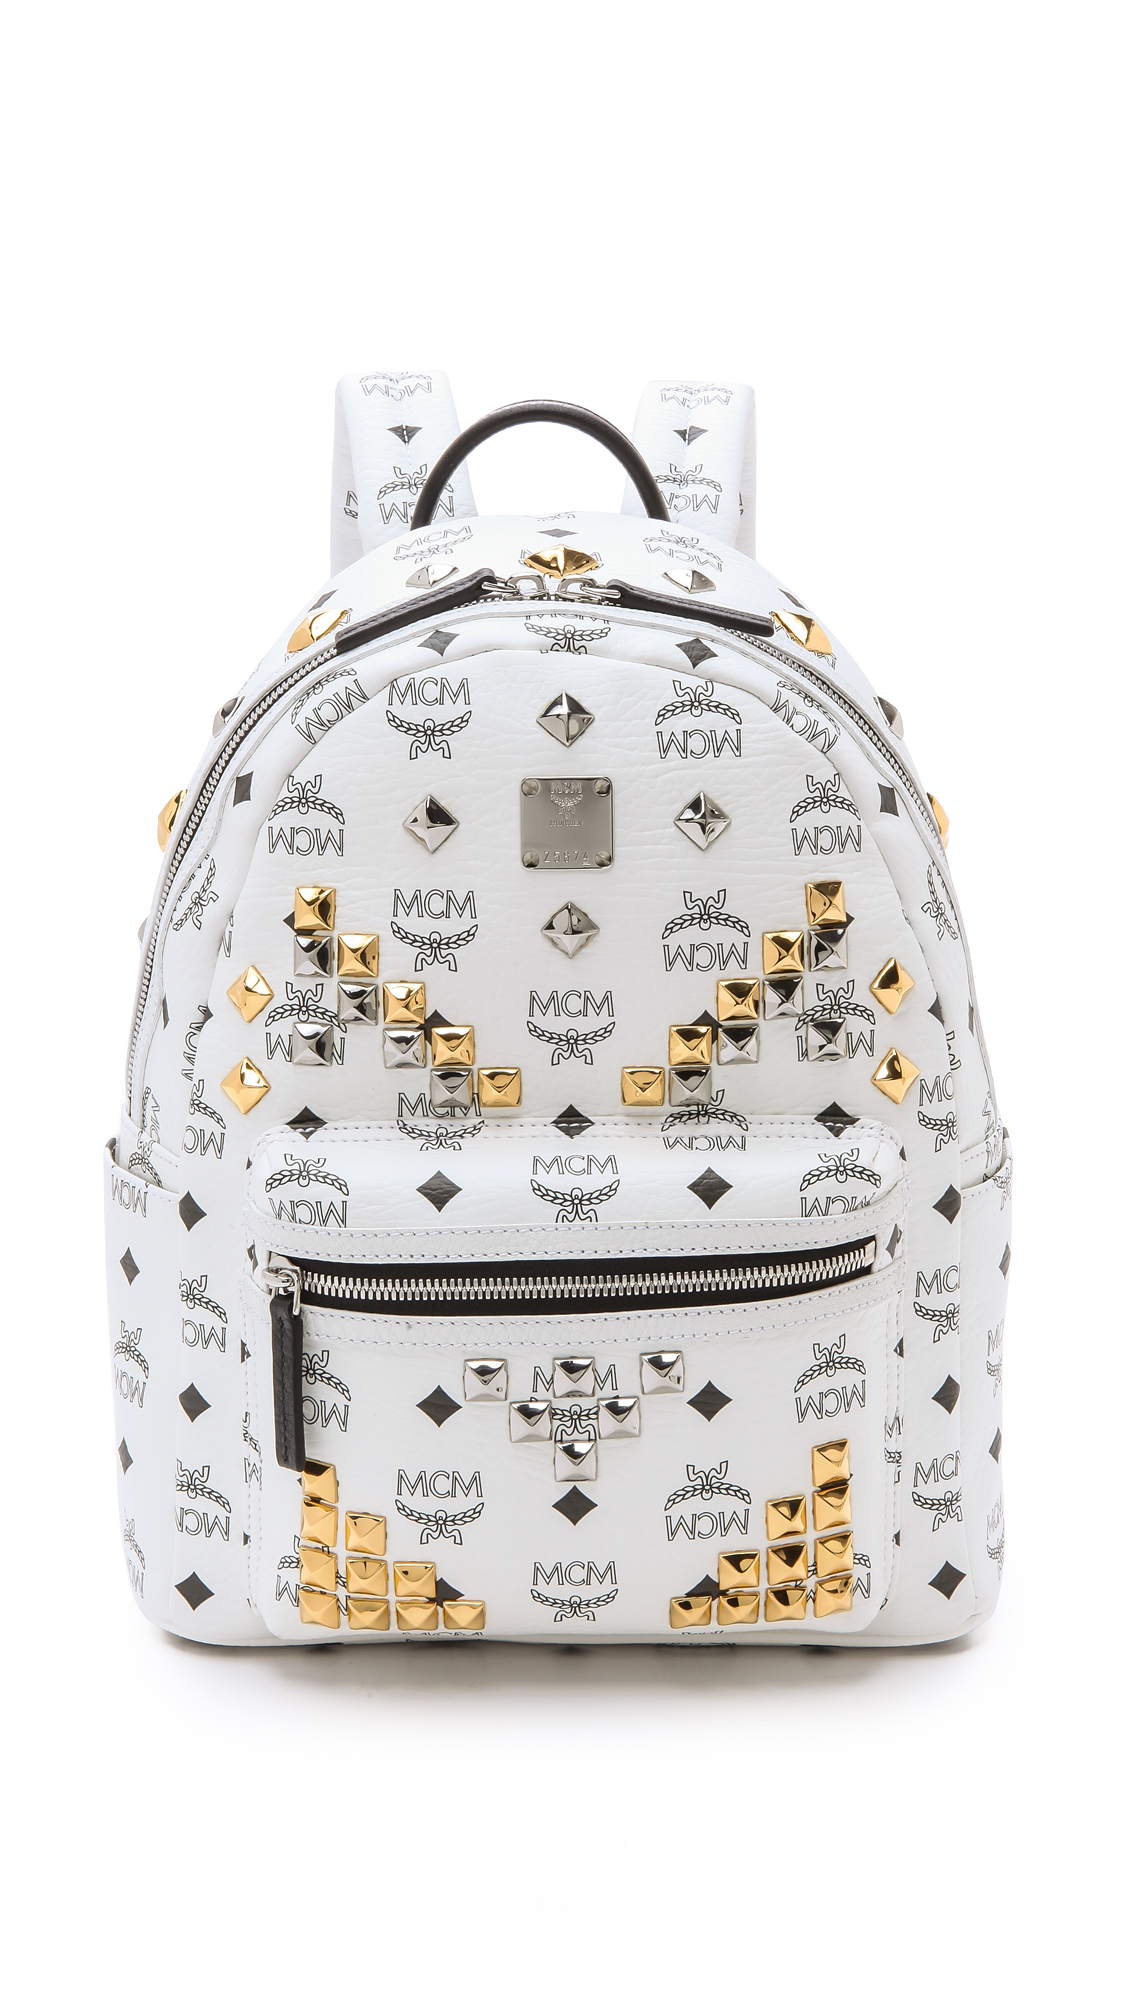 7a2f69a6e88a MCM Small Stark Studded Backpack